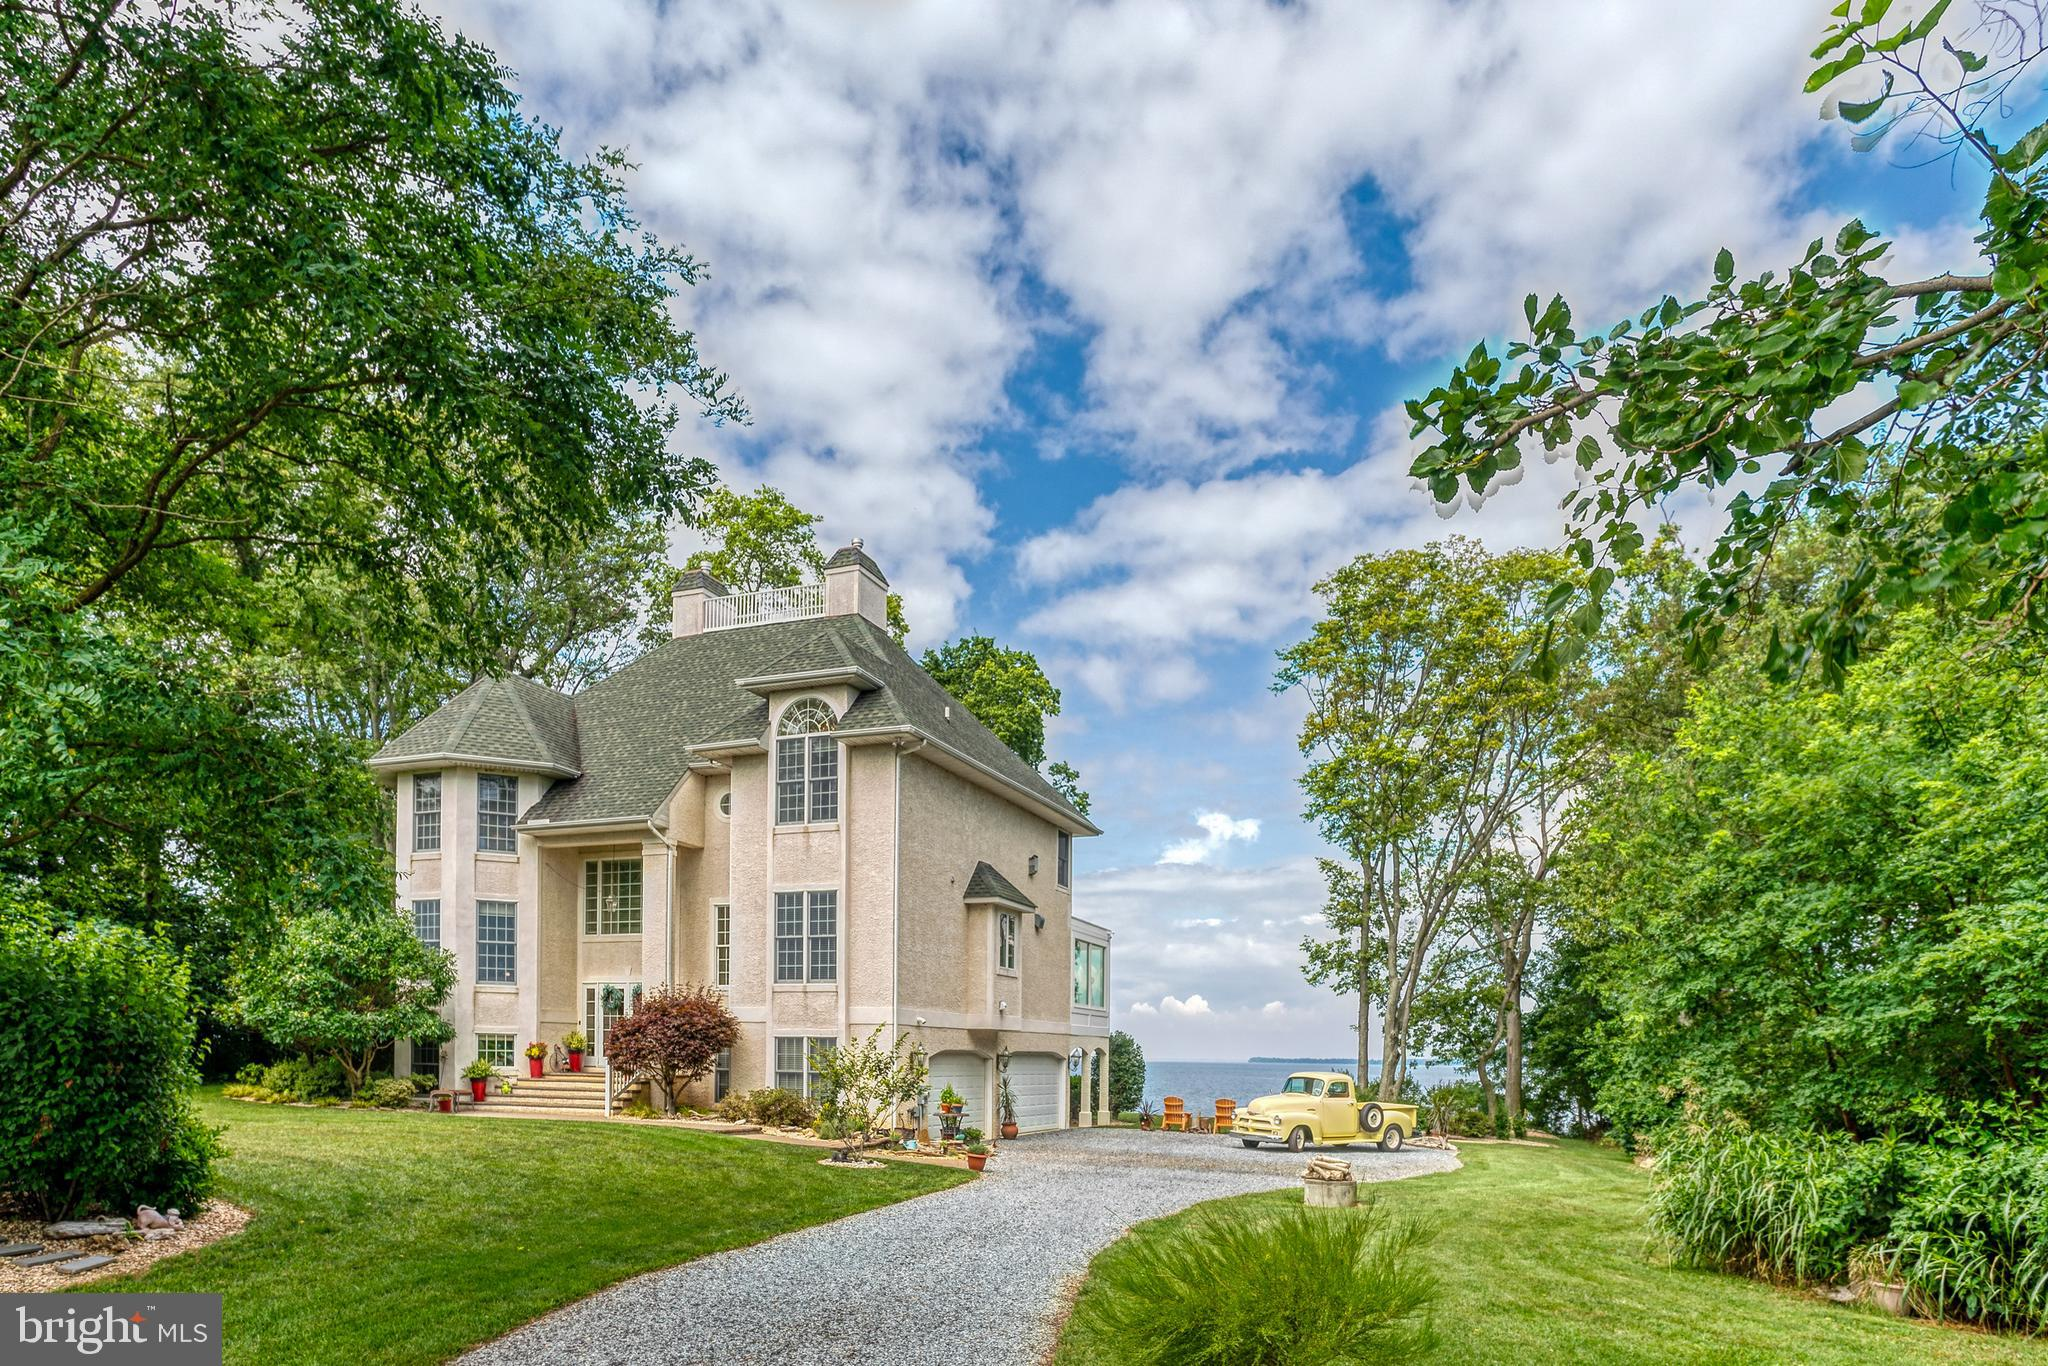 10840 CLIFF ROAD, CHESTERTOWN, MD 21620